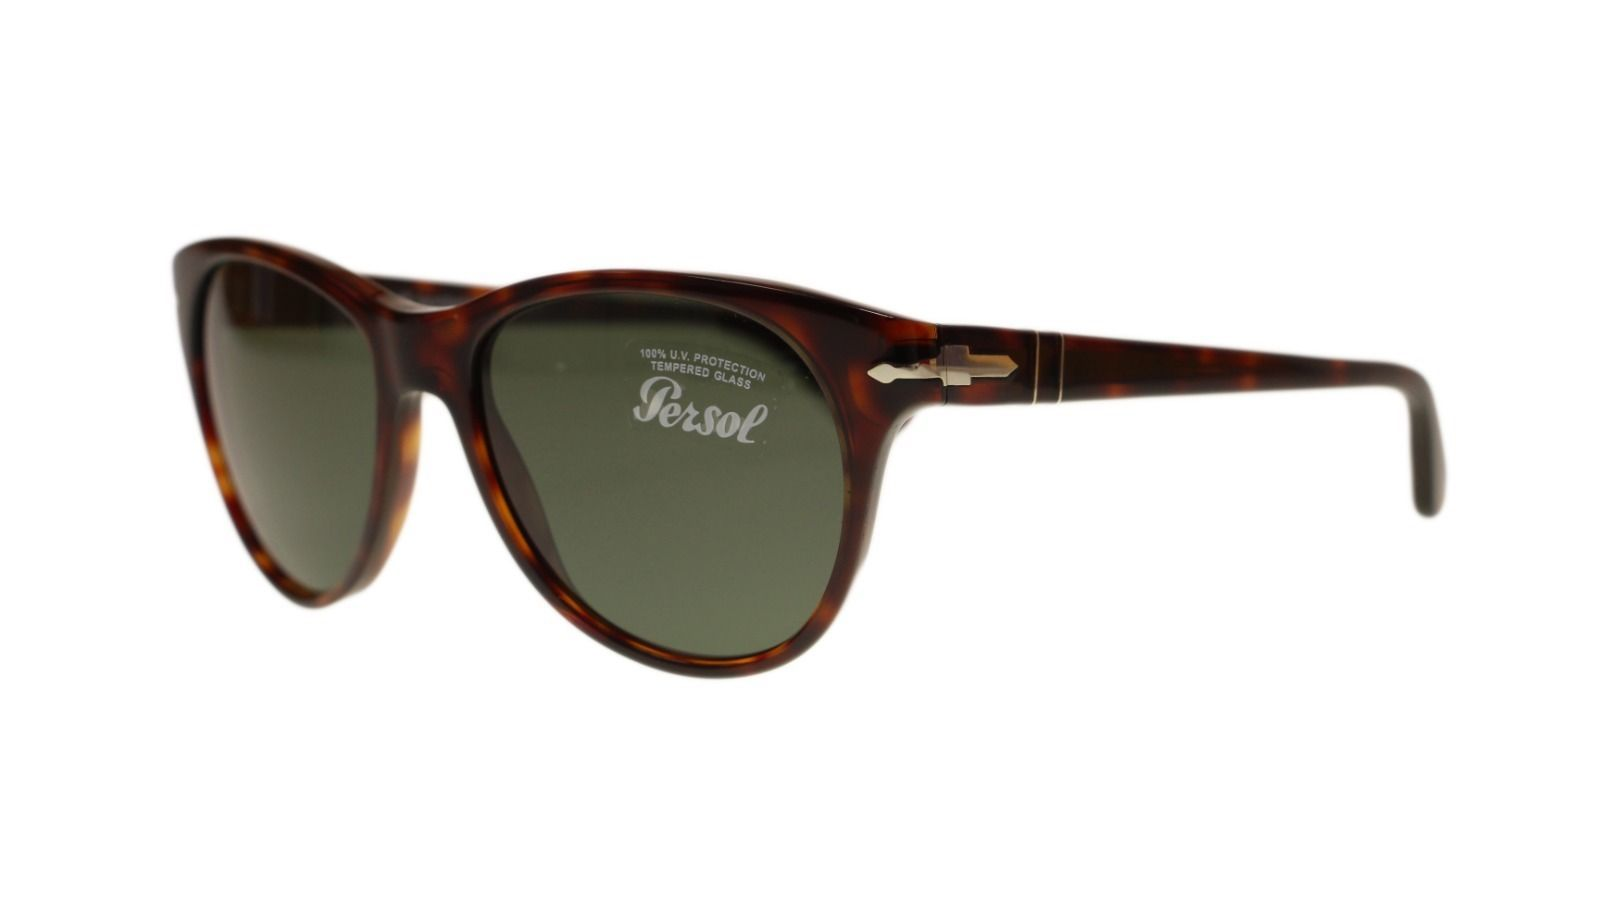 878daeaeb8444 Persol Women s Sunglasses PO3134S 24 31 and 14 similar items. S l1600